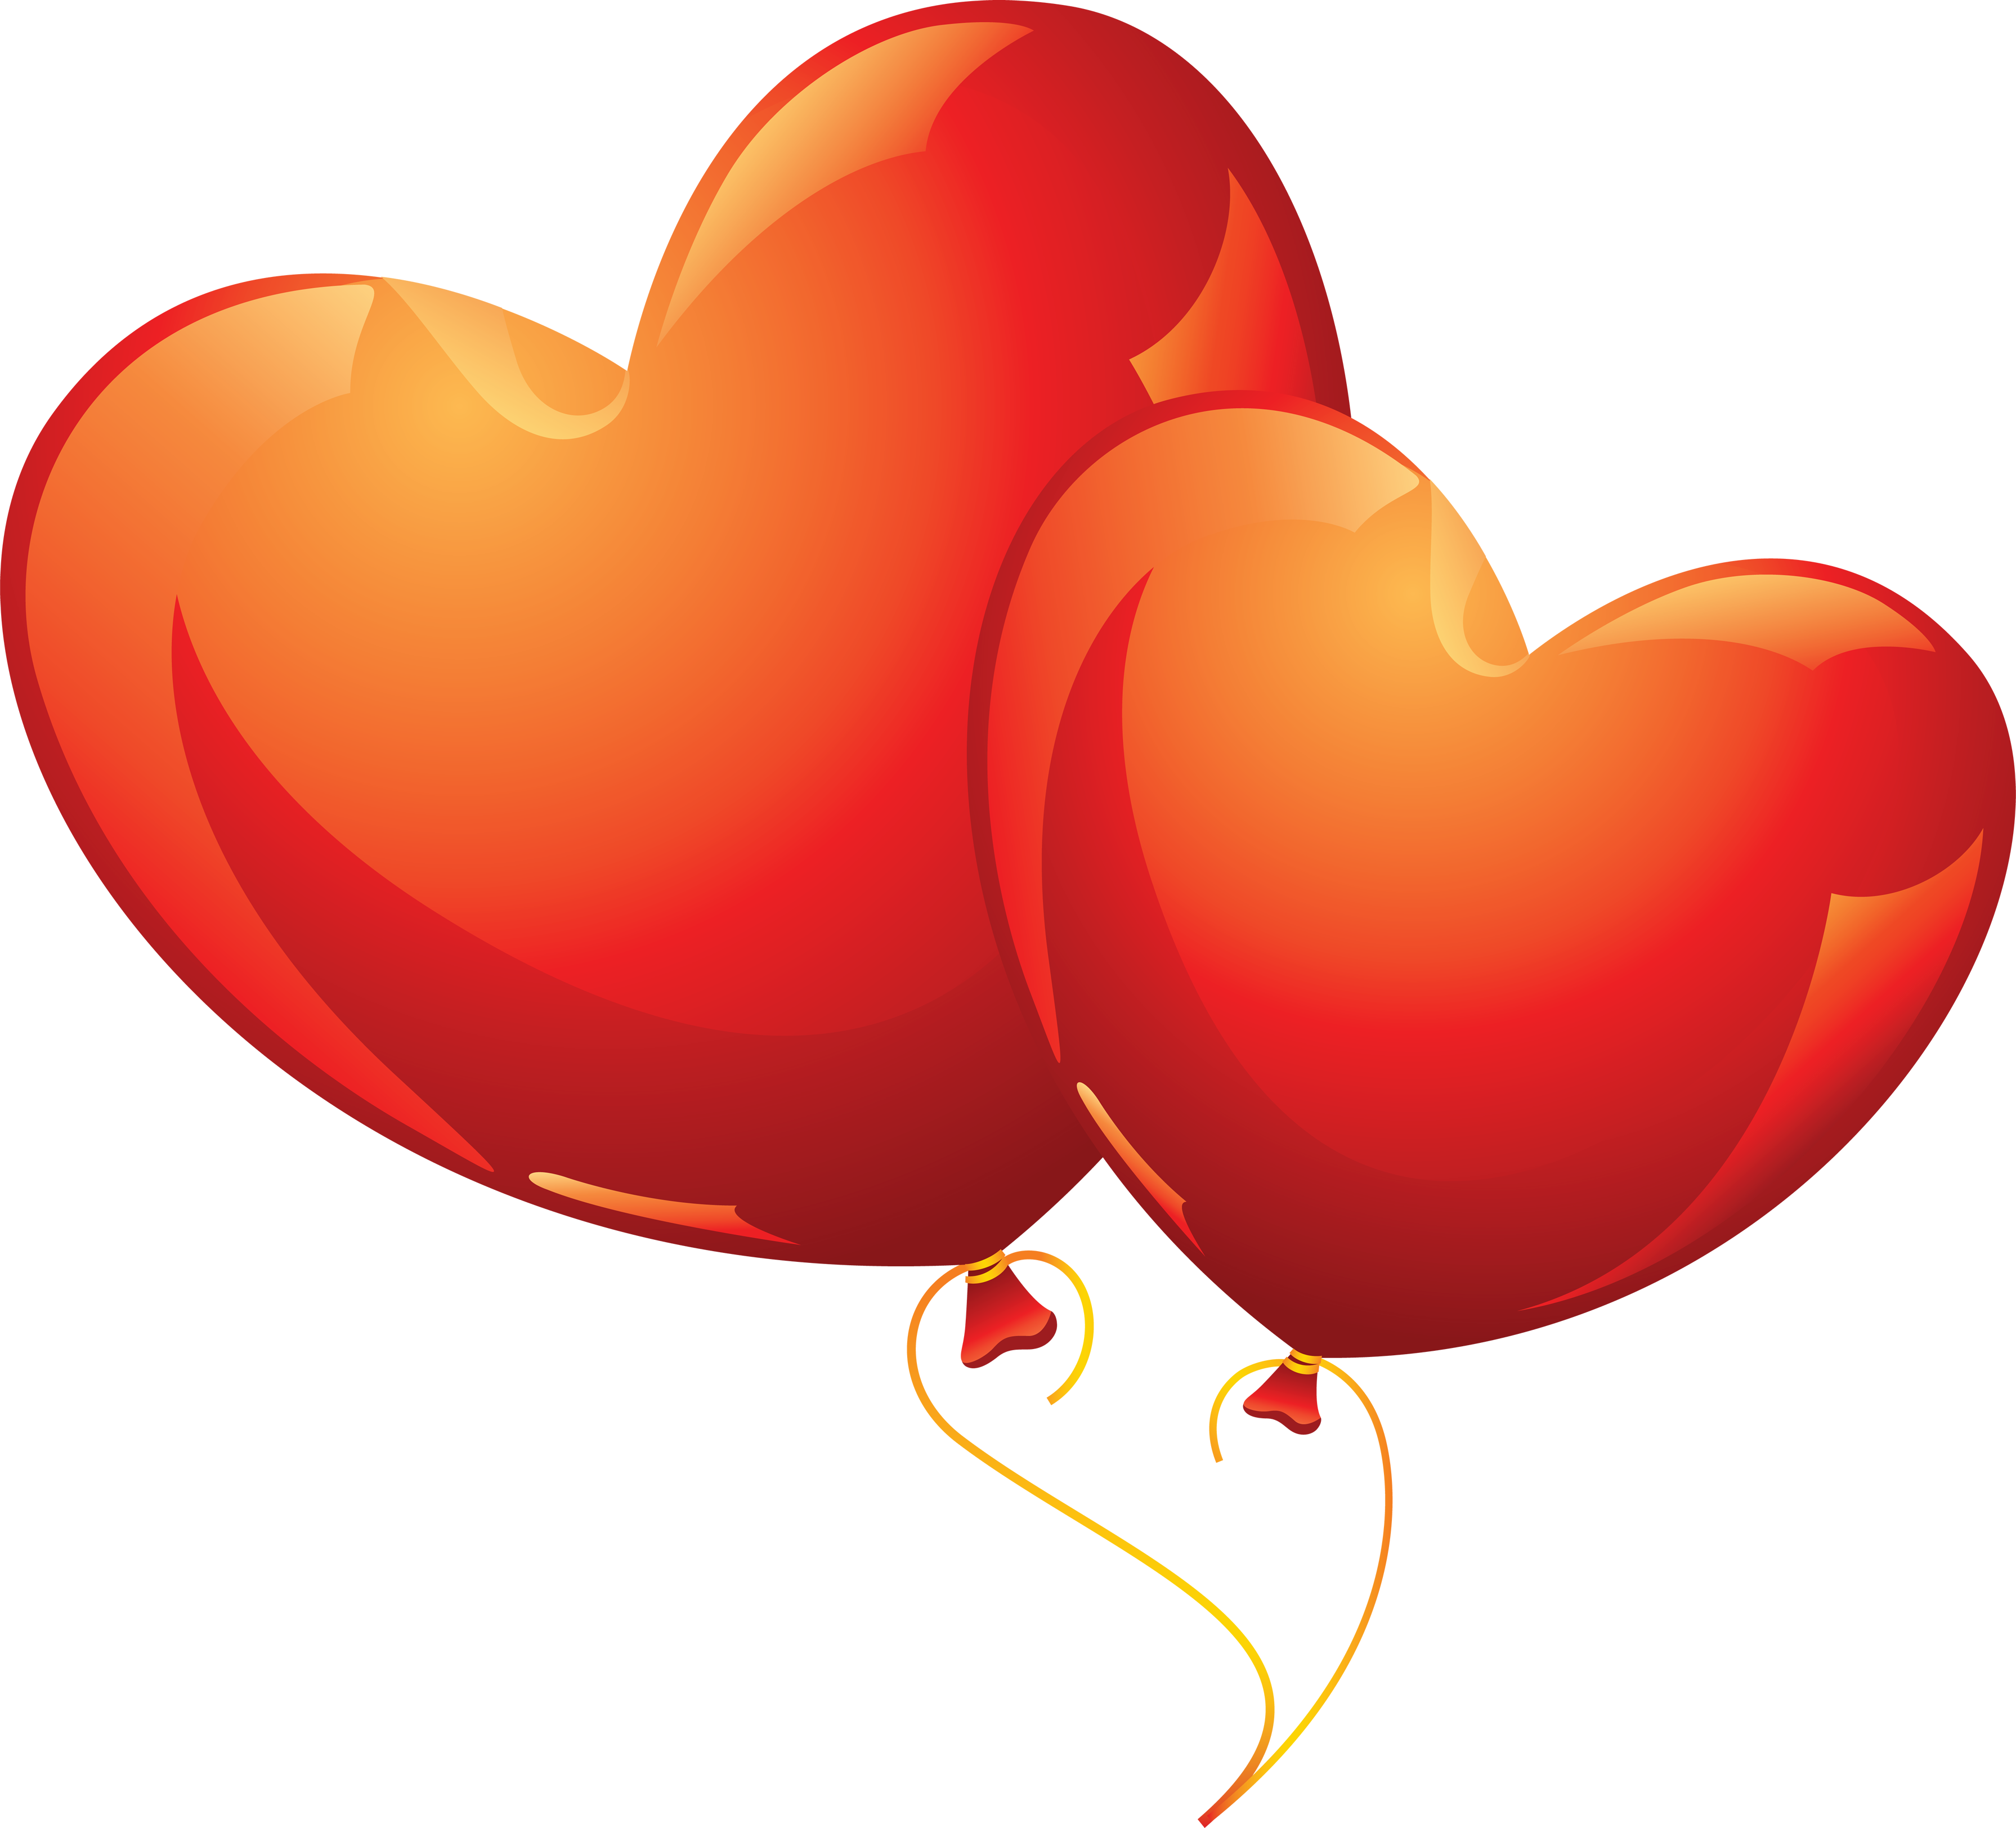 Heart balloon PNG image, free download, heart balloons